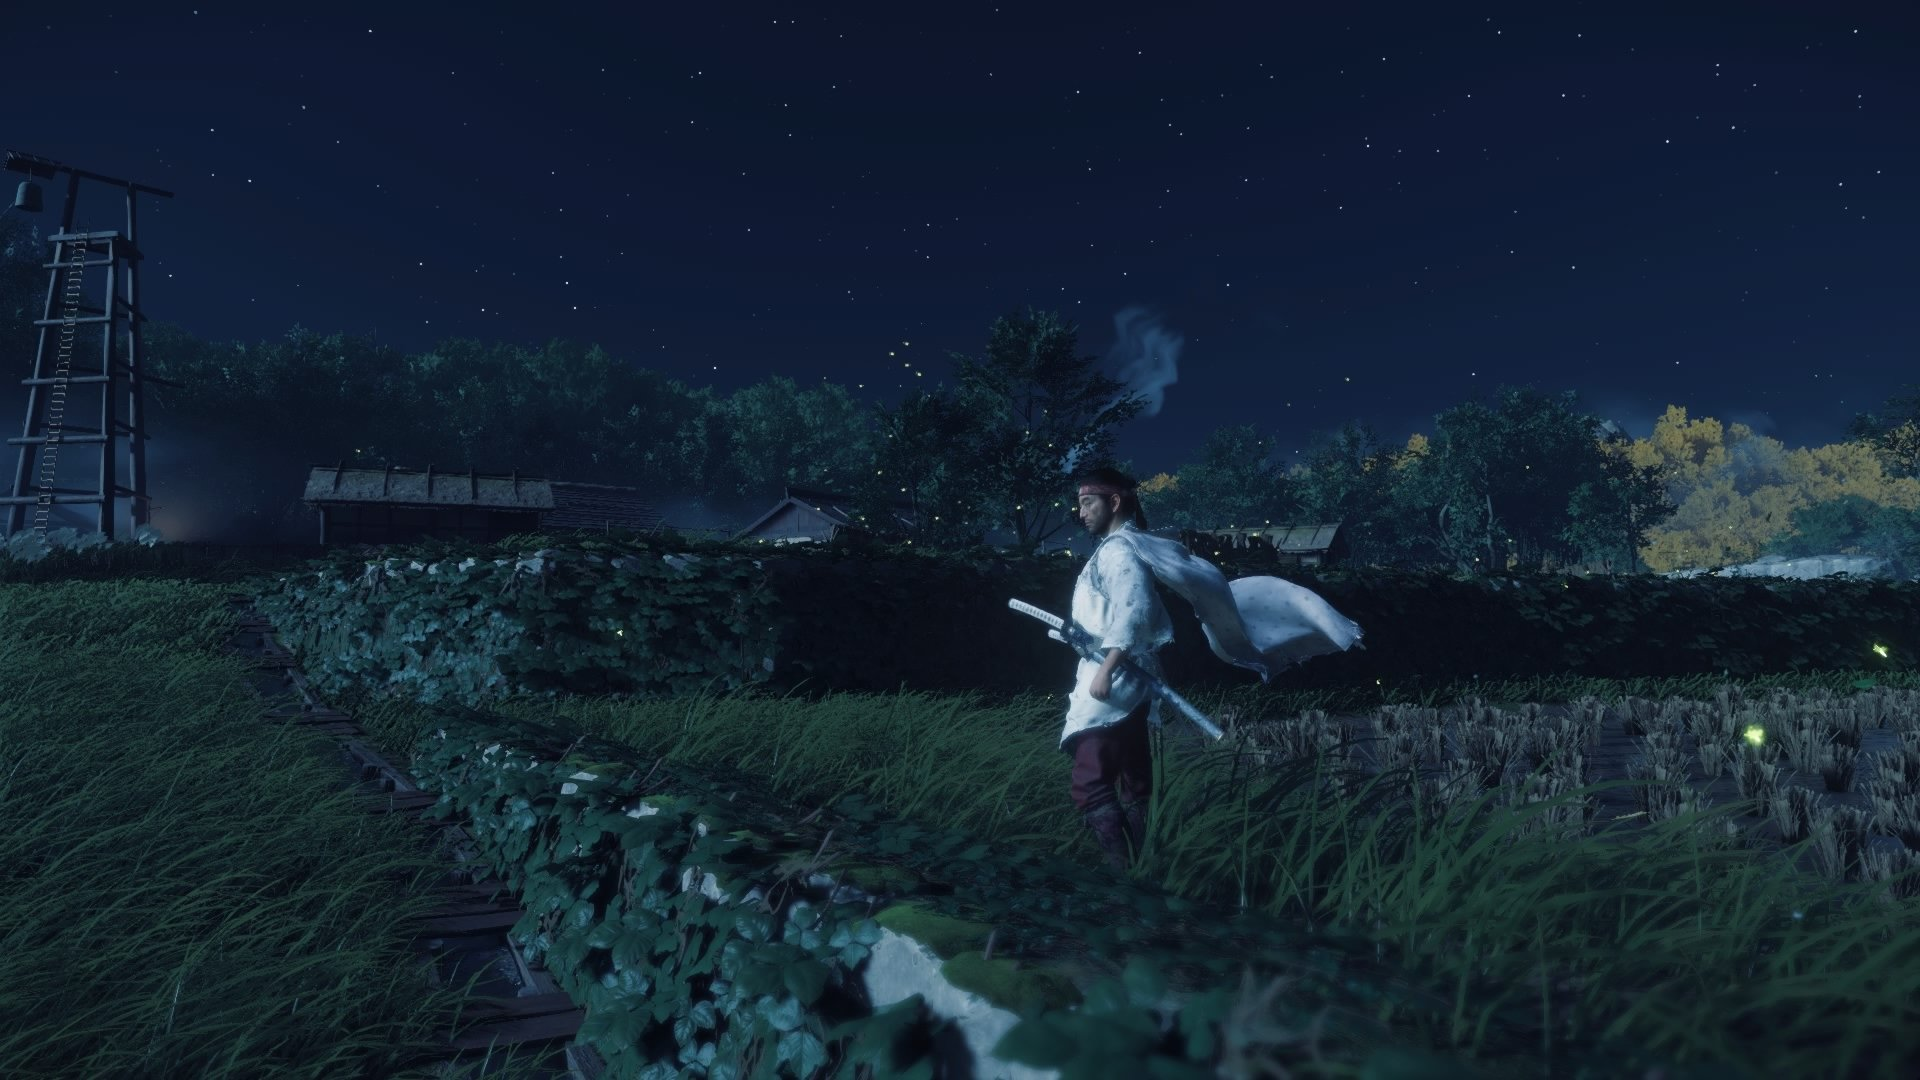 Ghost Of Tsushima: Legends Update Size Slightly Over 8.4 GB Of Data With Free Update